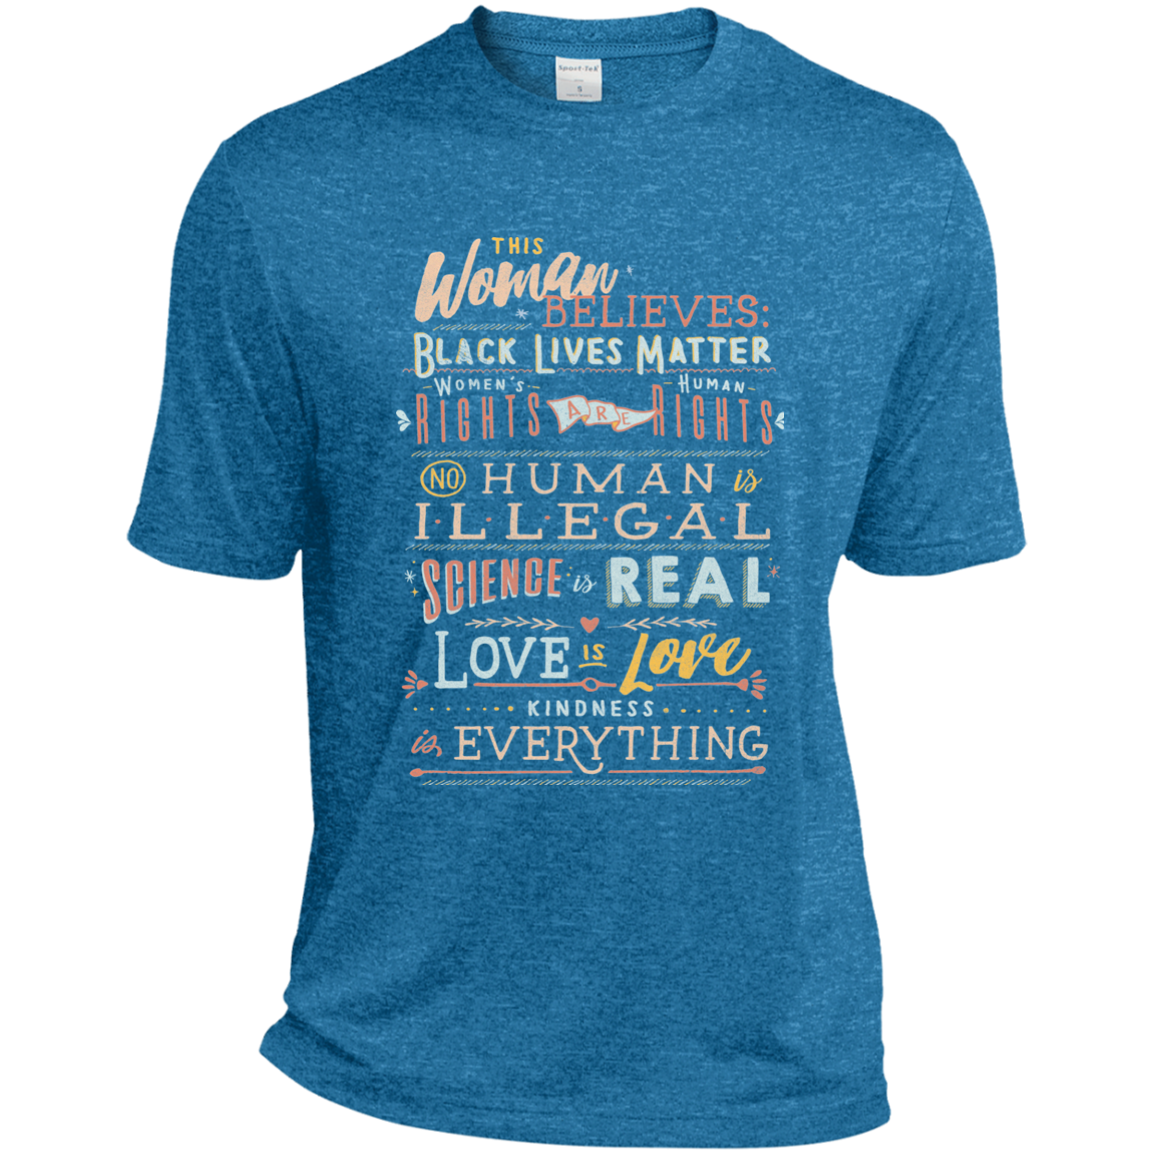 7f57a0083 ... This Woman Believes - Men's Styles - Feminist T Shirts & Apparel ...